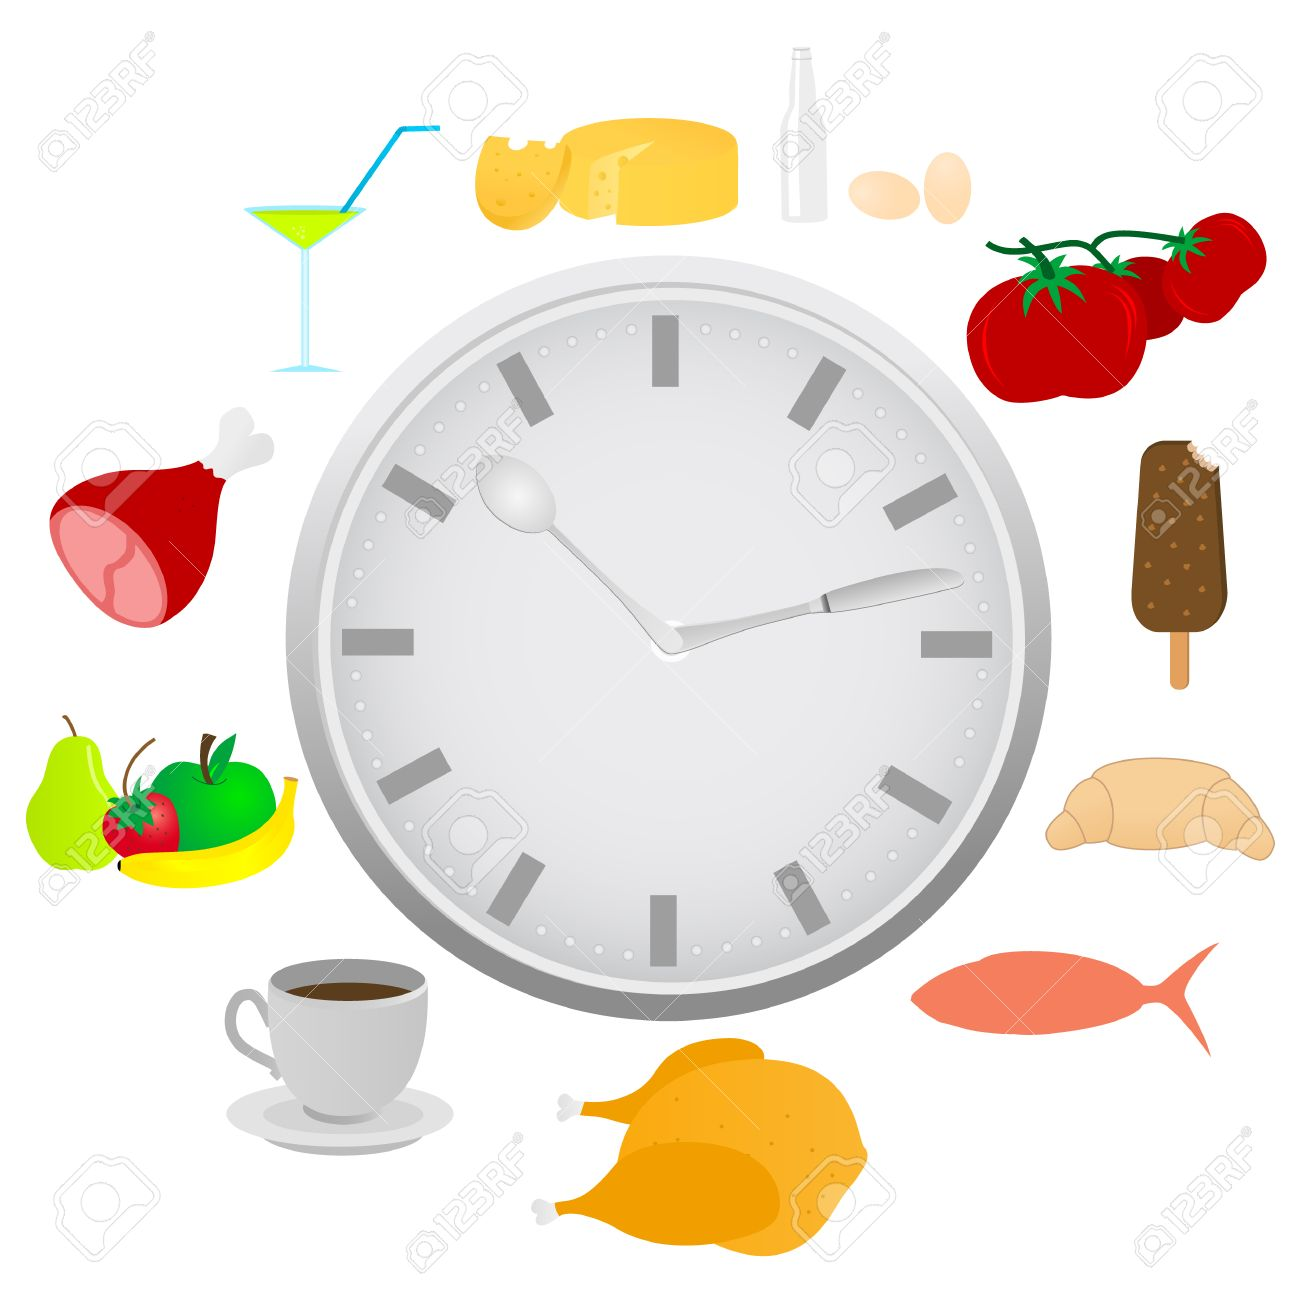 Abstract Detailed Clock With Food And Kitchen Utensils Royalty Free ...